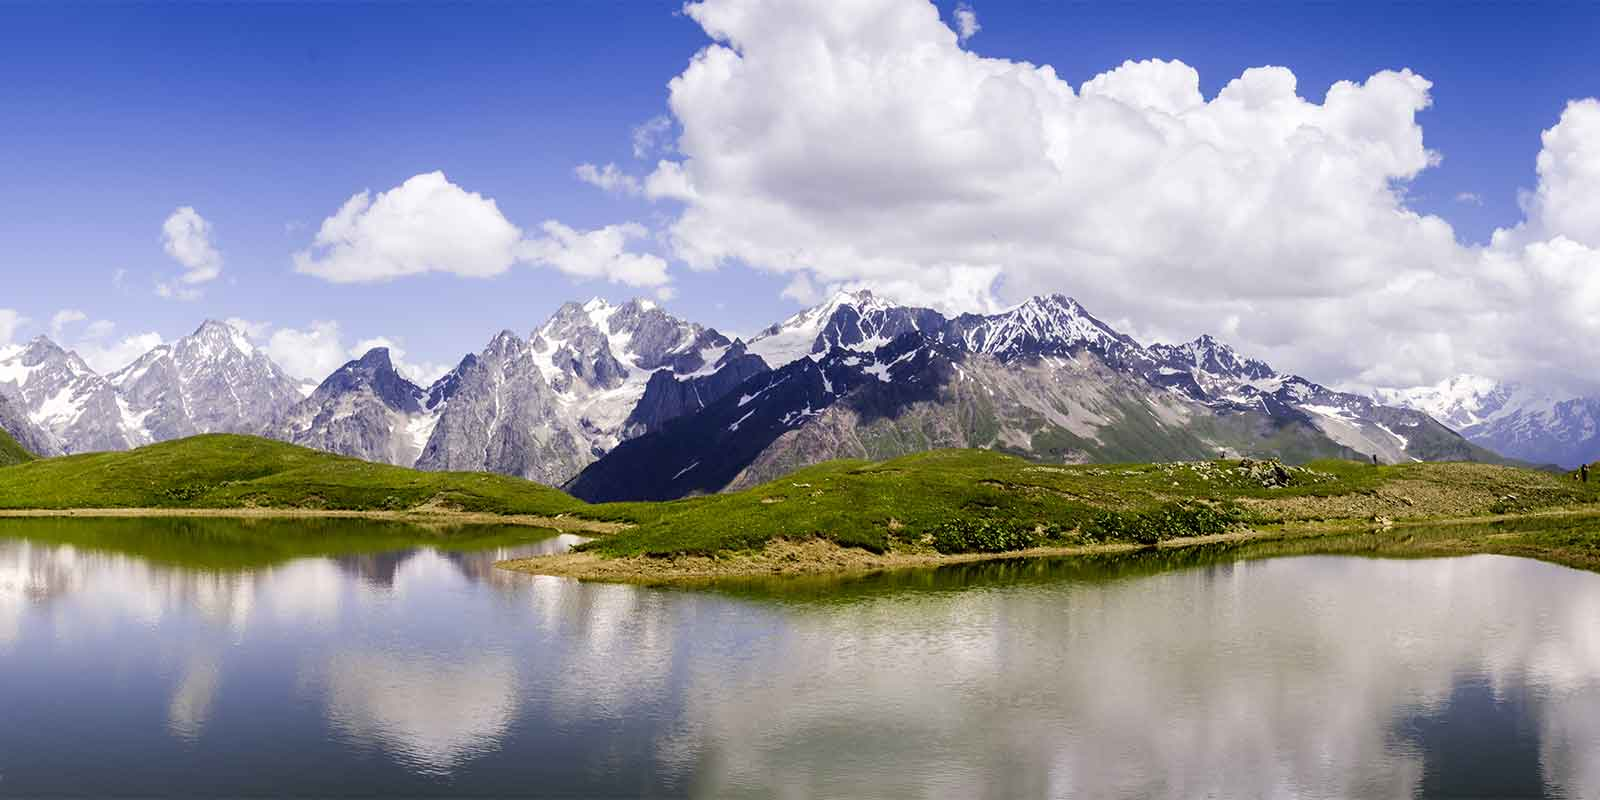 Koruldi Lake in the Caucasus mountains of Georgia